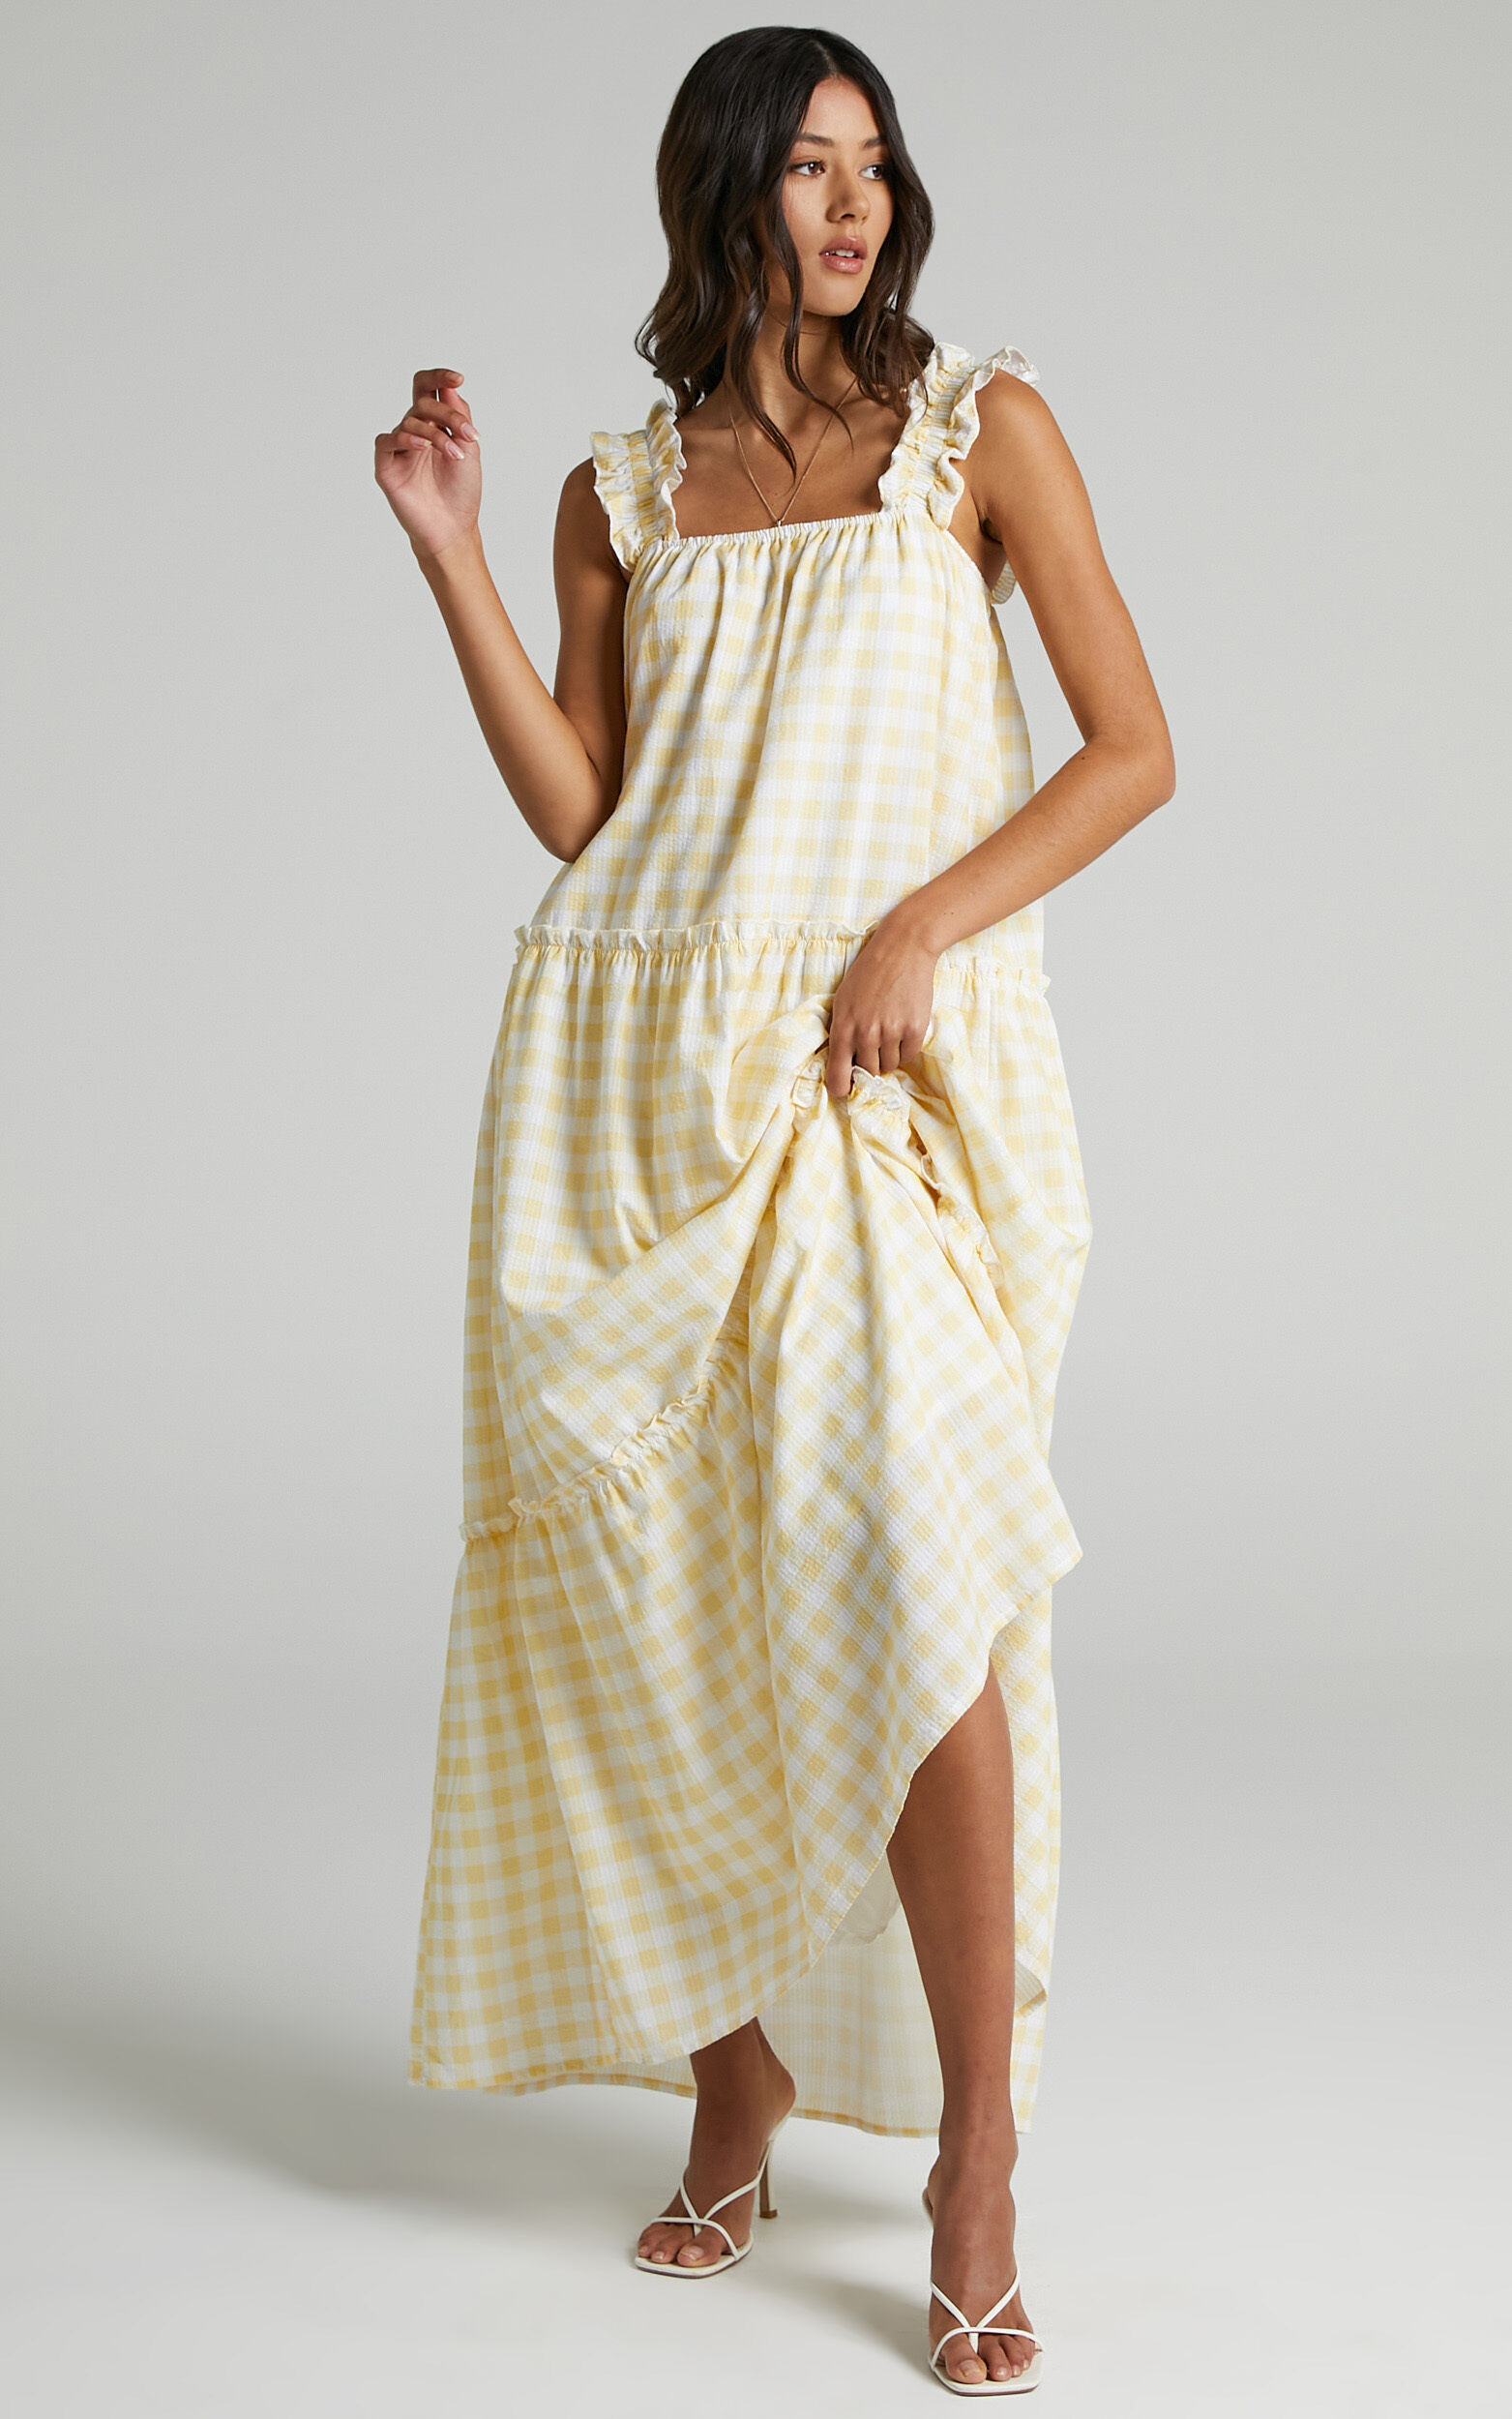 Charlie Holiday - Lottie Dress in Yellow Gingham - 06, YEL1, super-hi-res image number null